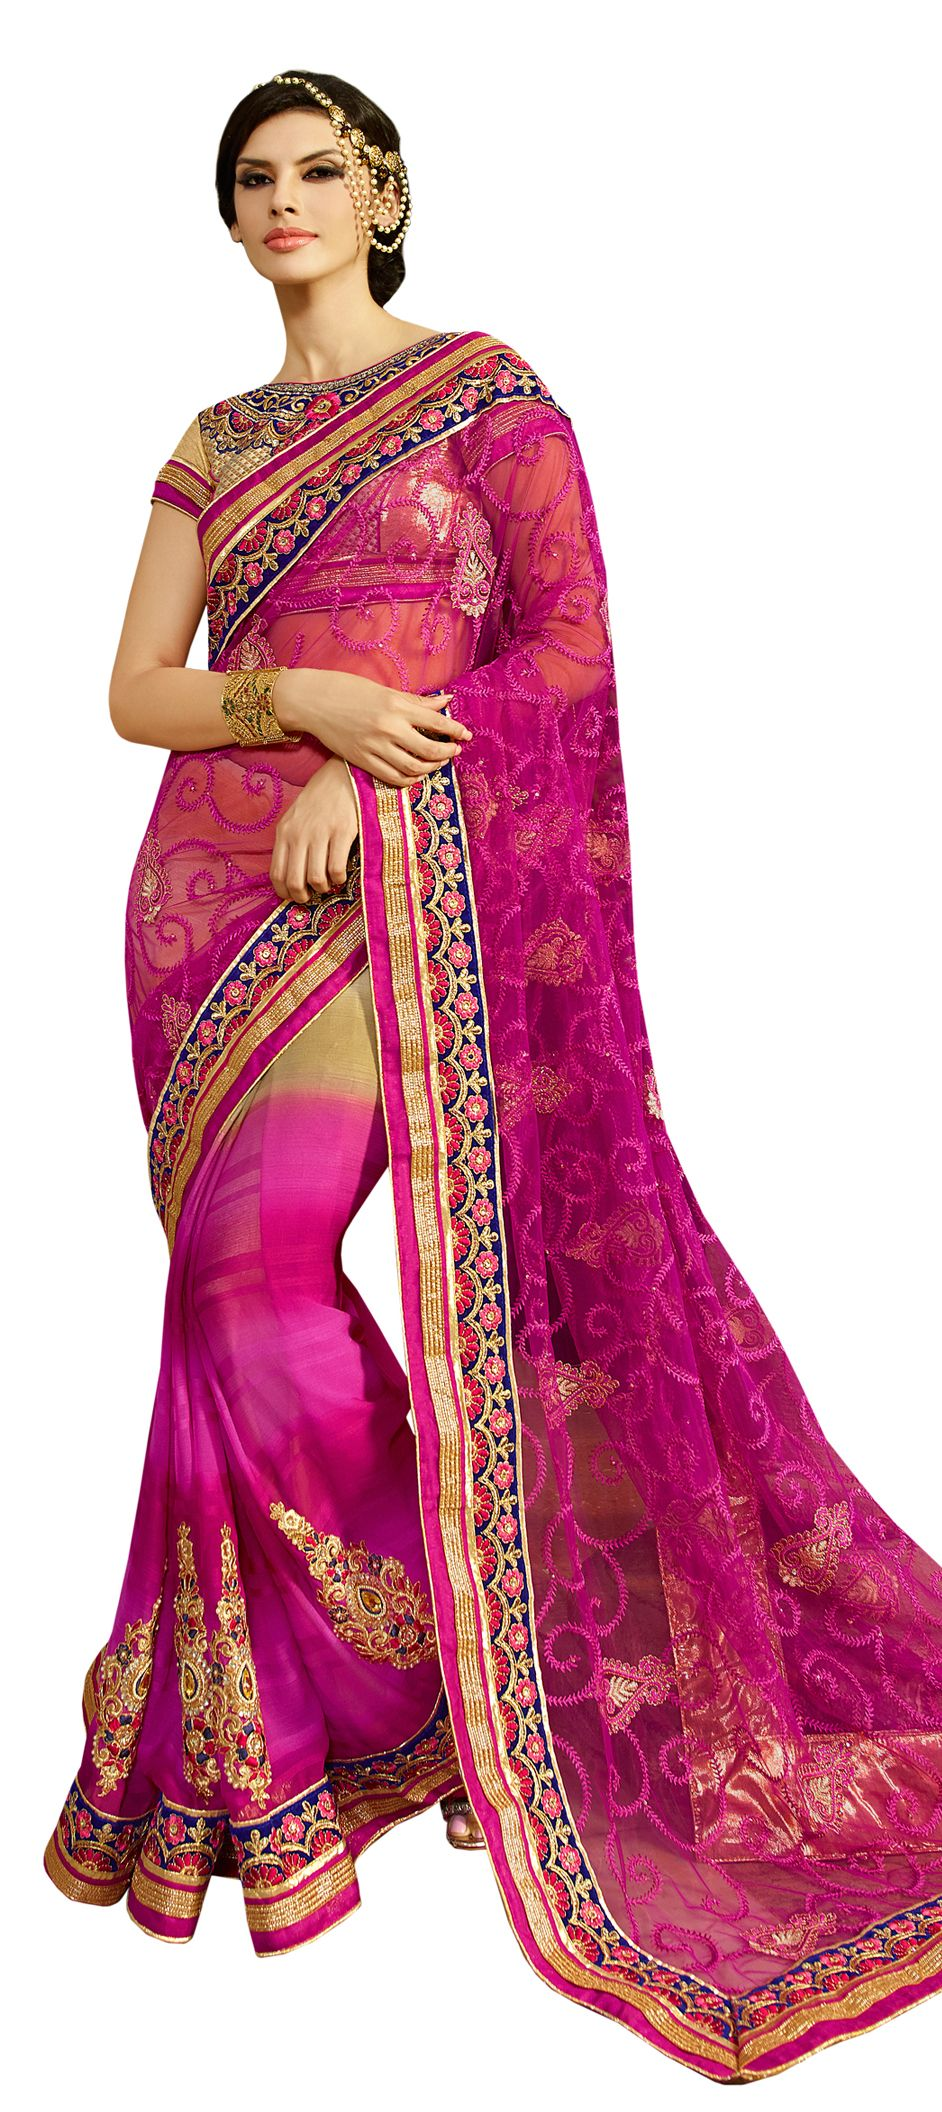 178468: Beige and Brown, Pink and Majenta color family Bridal ...